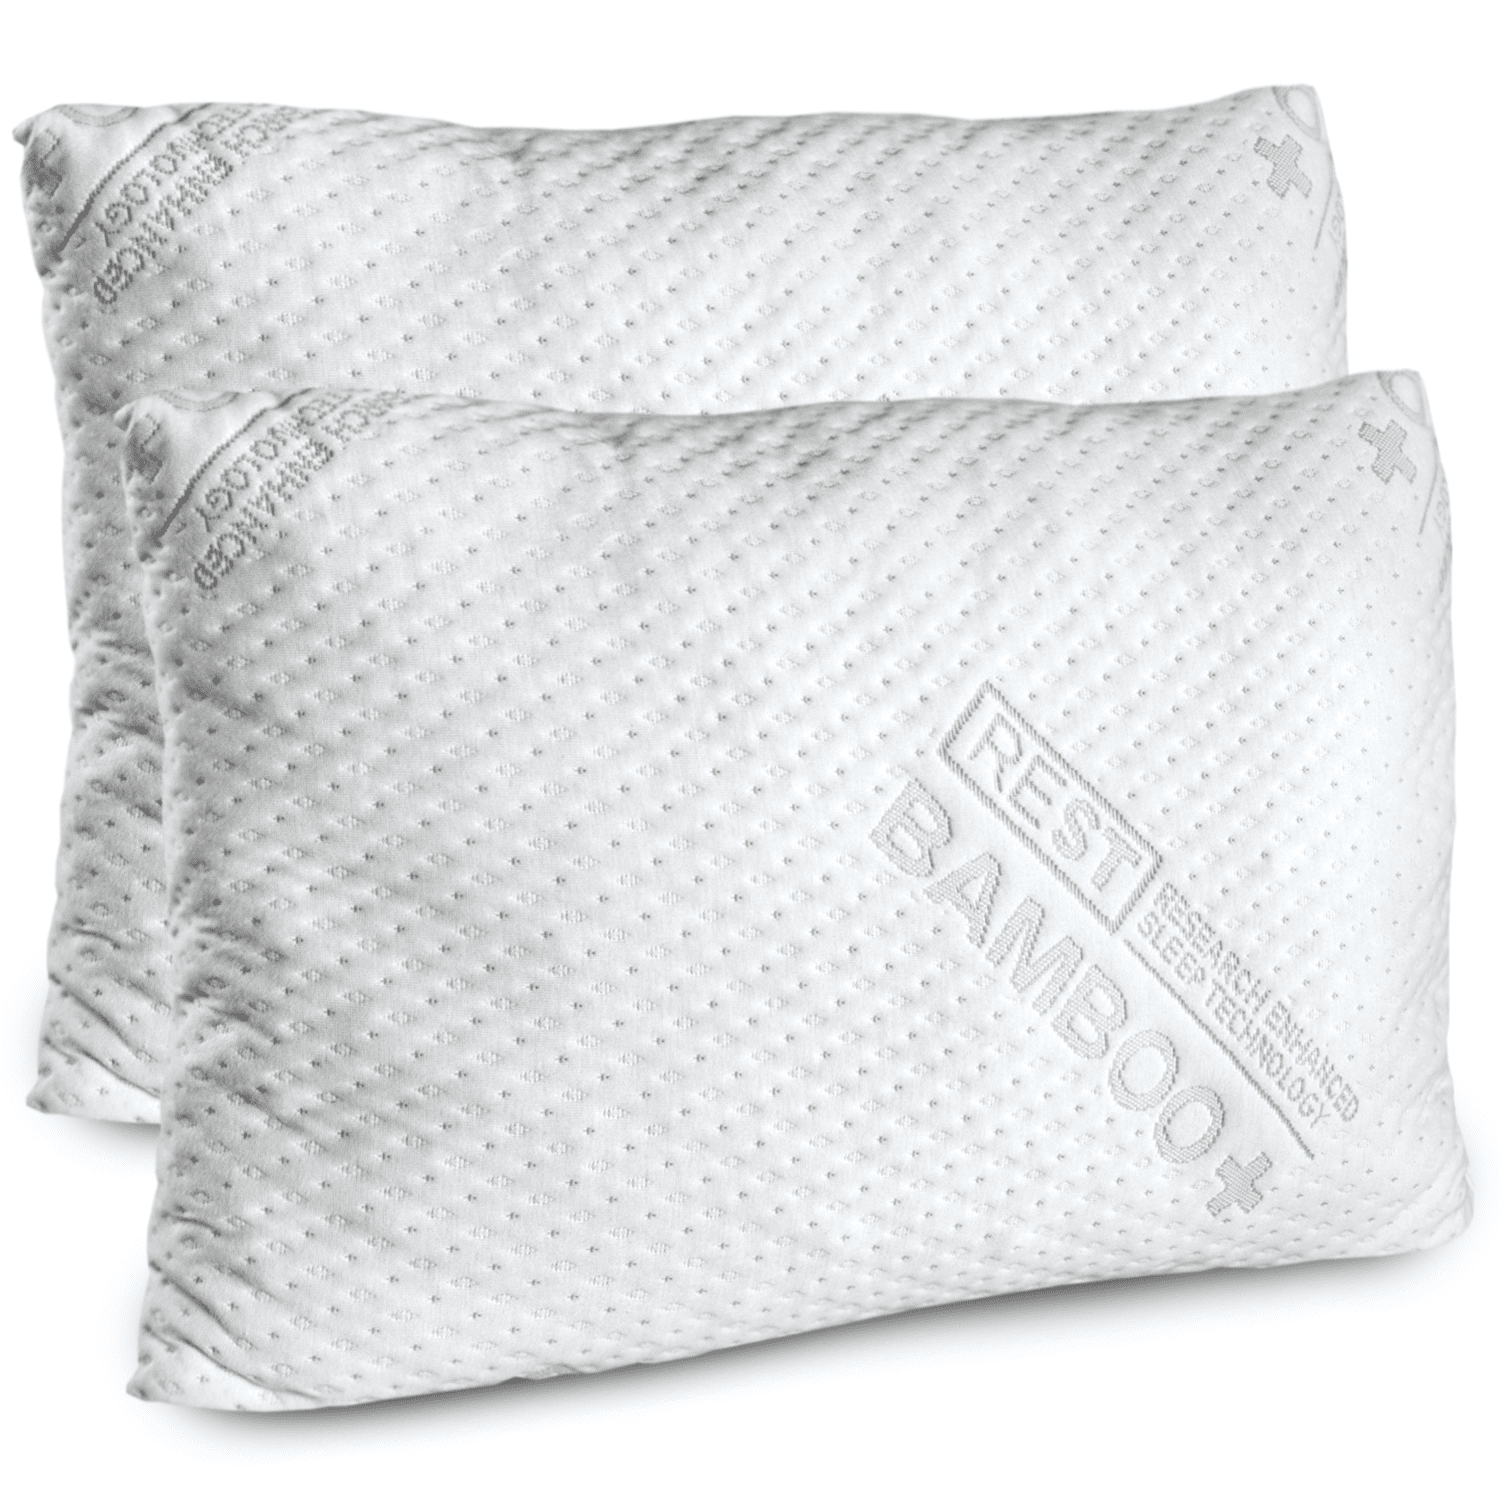 REST Premium Blended Memory Foam Queen Size Pillow (2 Pack)